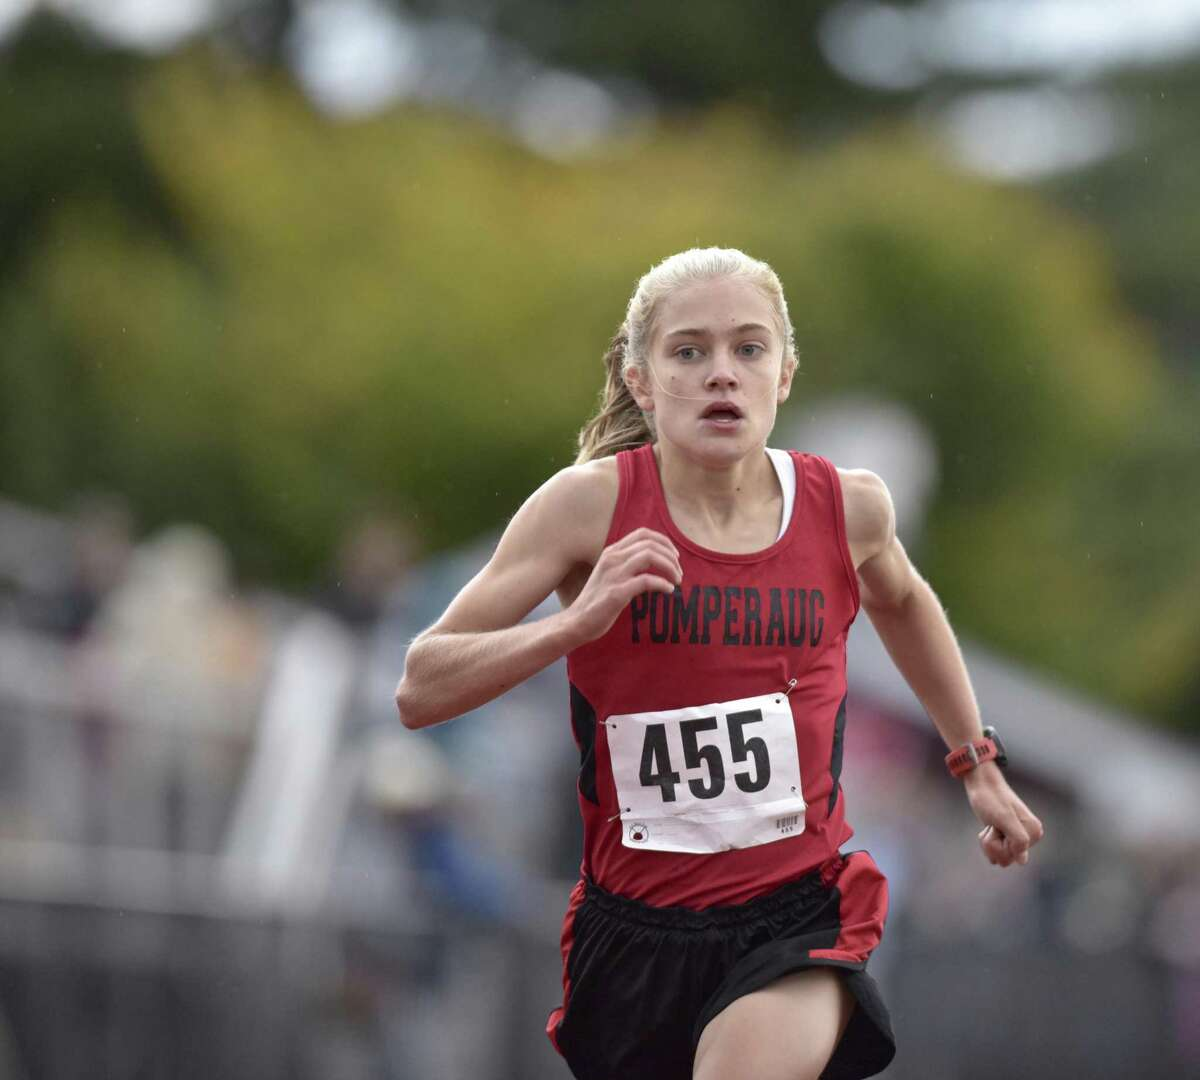 Kate Wiser lowered her course record by almost a minute in winning the 2018 SWC girls cross country championship